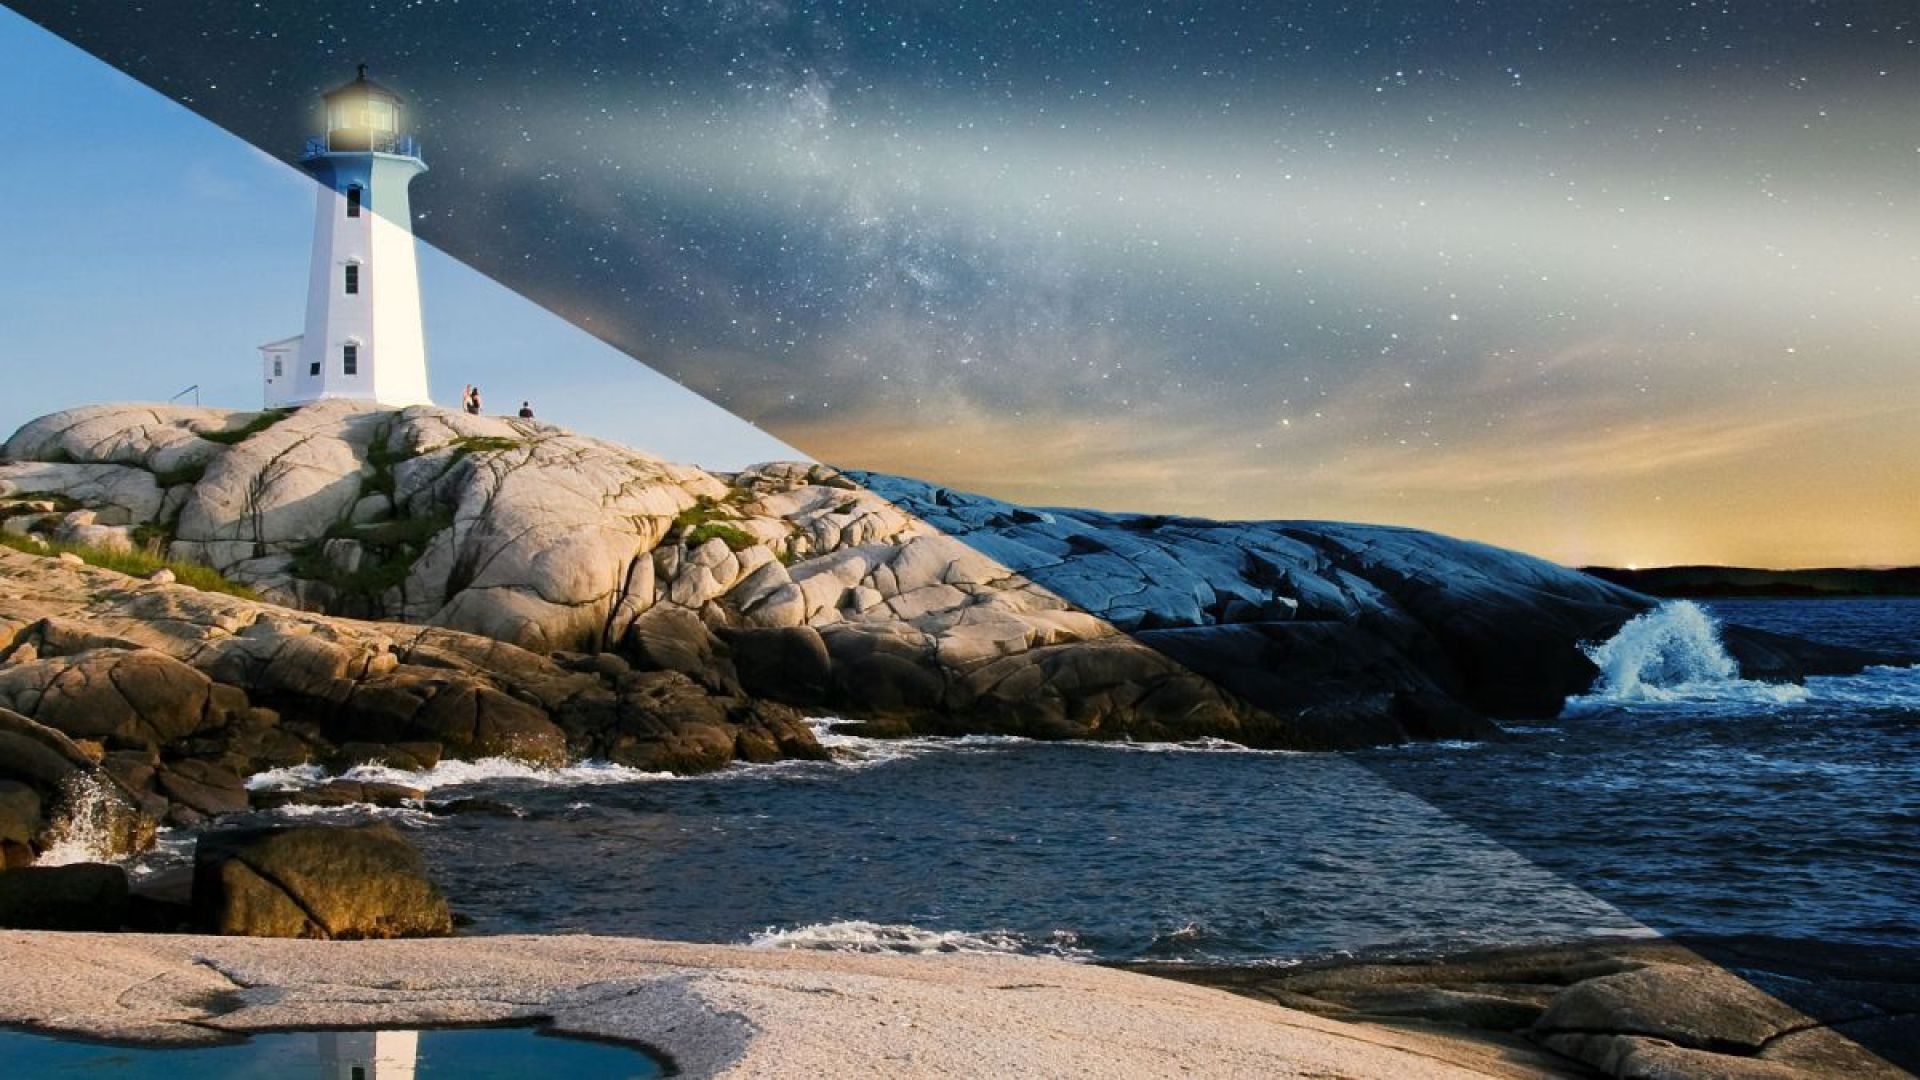 How to turn day into night in Photoshop